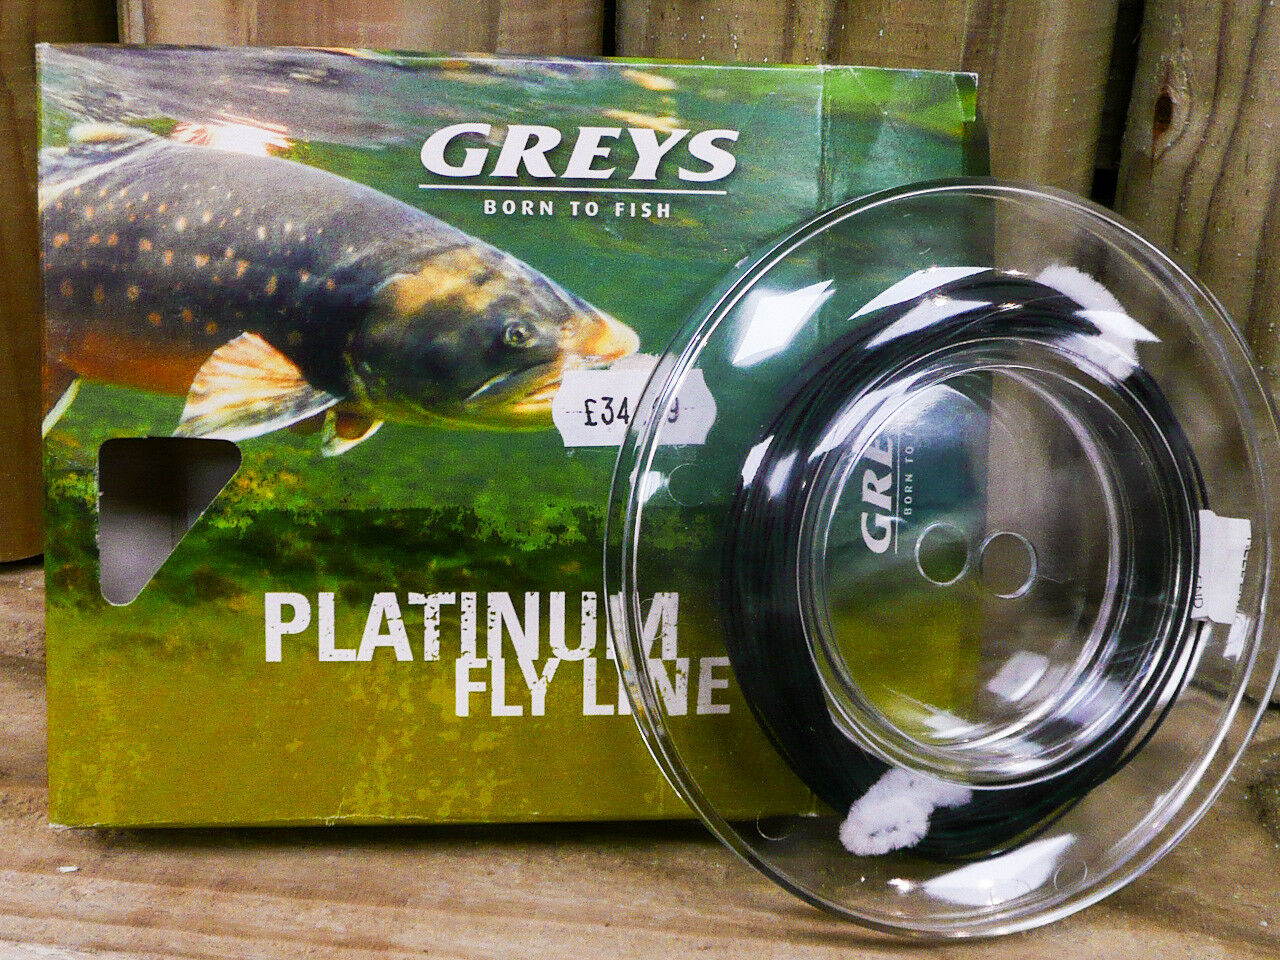 GREYS BORN TO  FISH PLATINUM FLY LINE HERON GREY, HI VI FLOATING FLY FISHING,NEW  best service